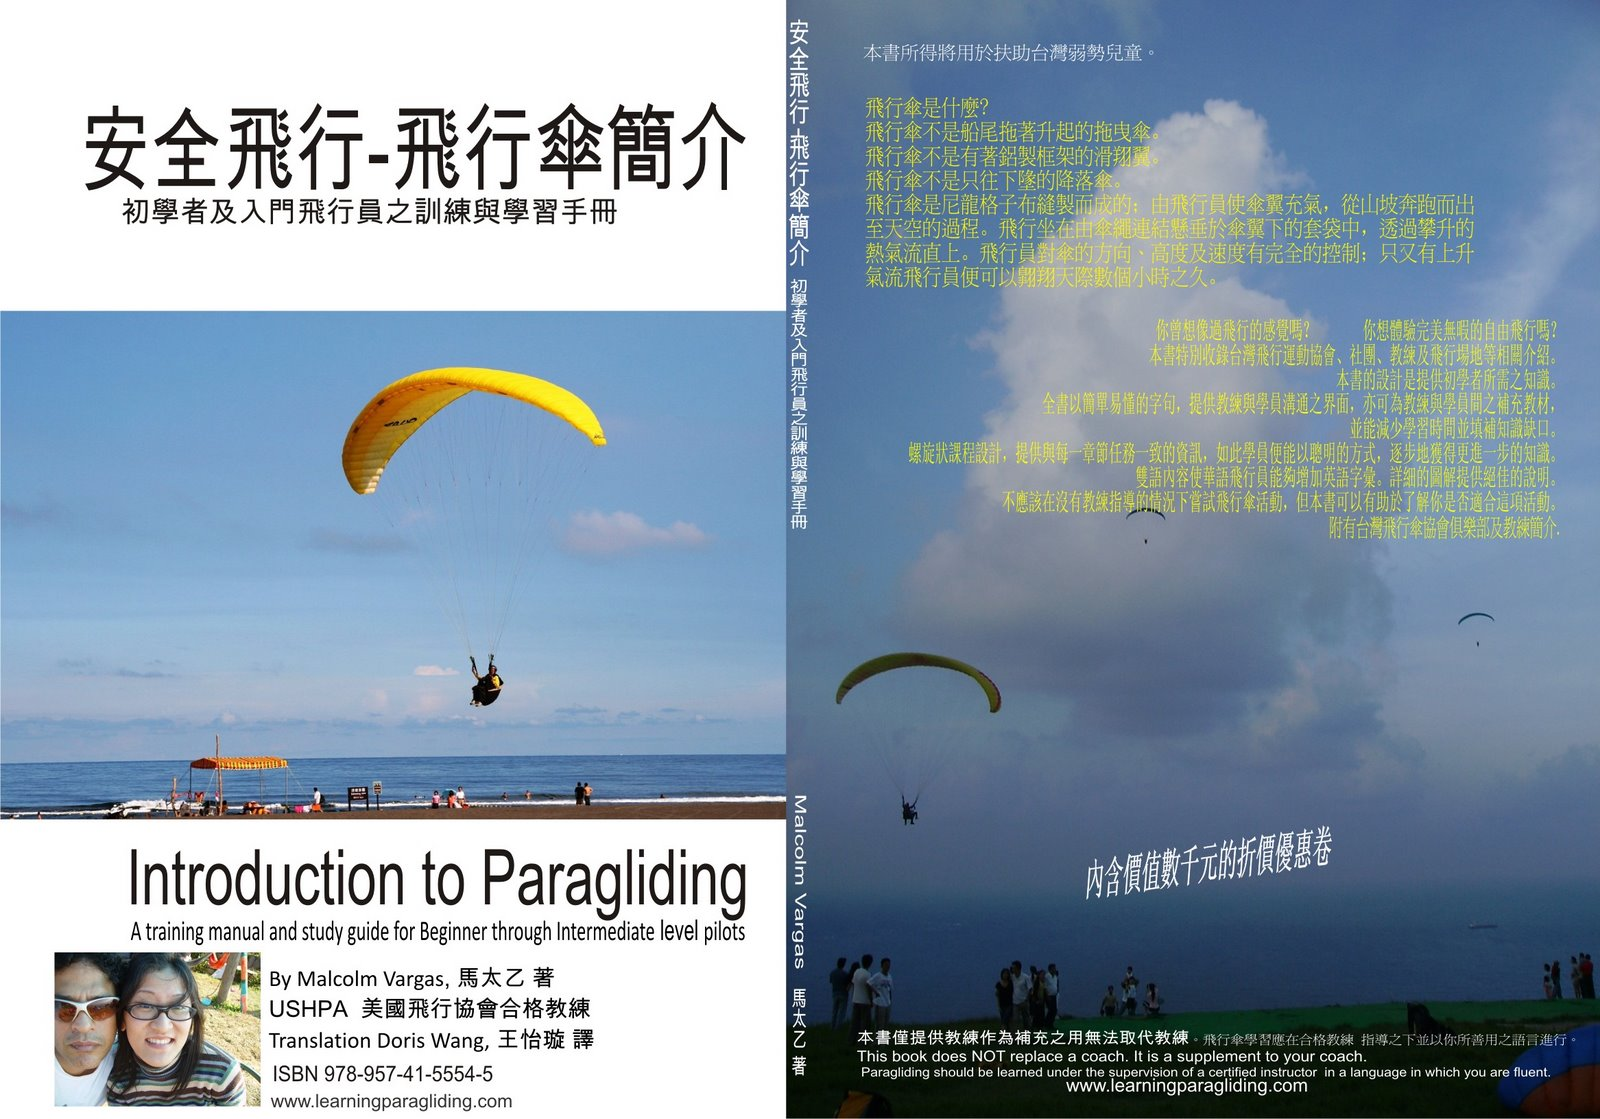 Introduction to Paragliding                            飛行傘簡介